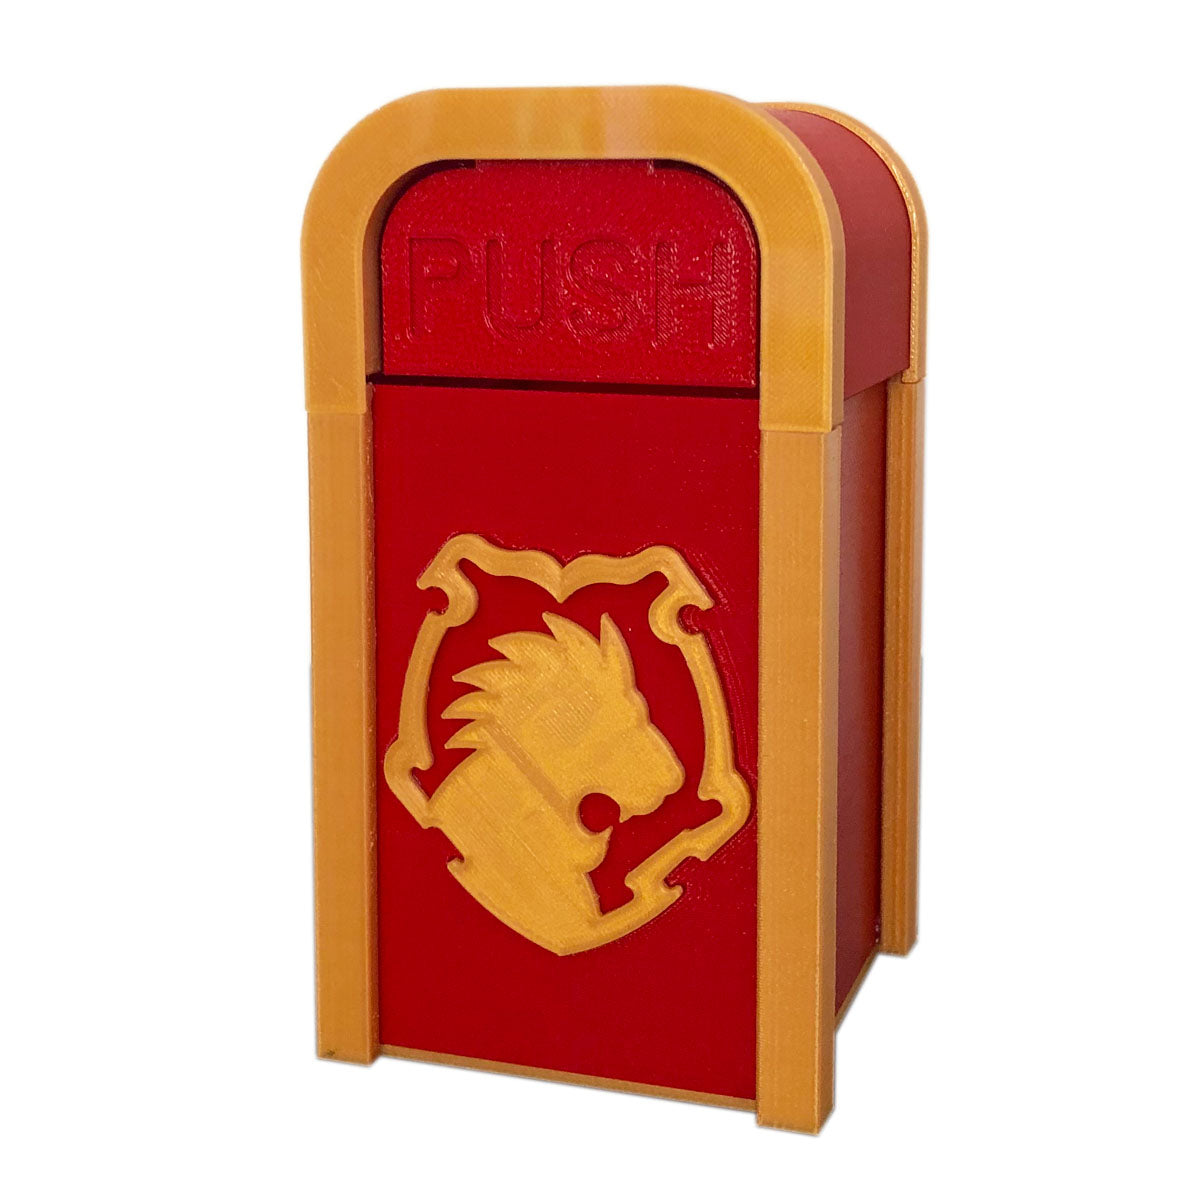 Courageous Lion Desktop Trash Can